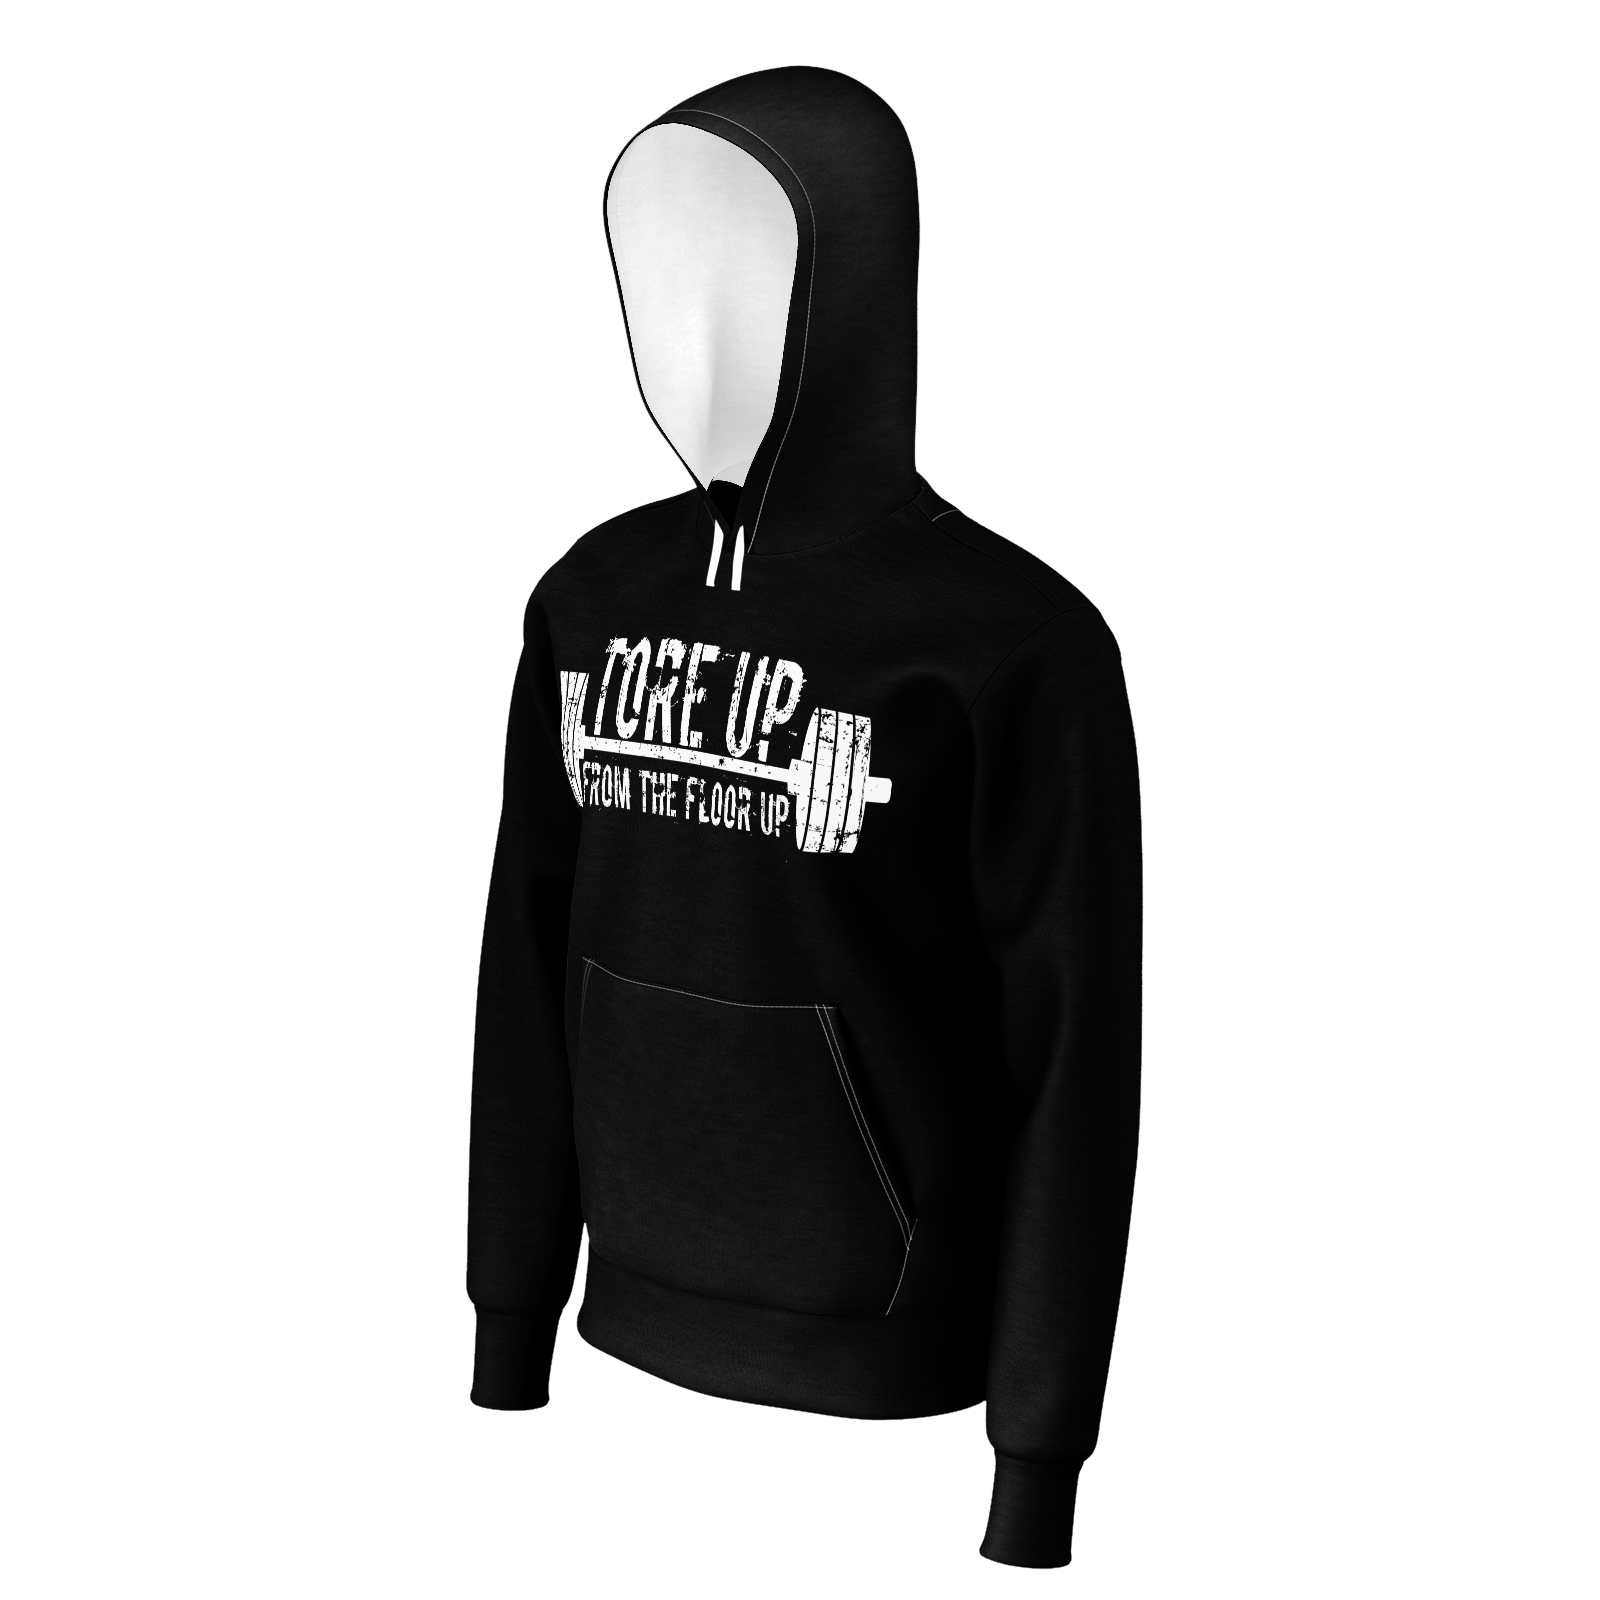 TORE UP BLACK AND WHITE HOODIE